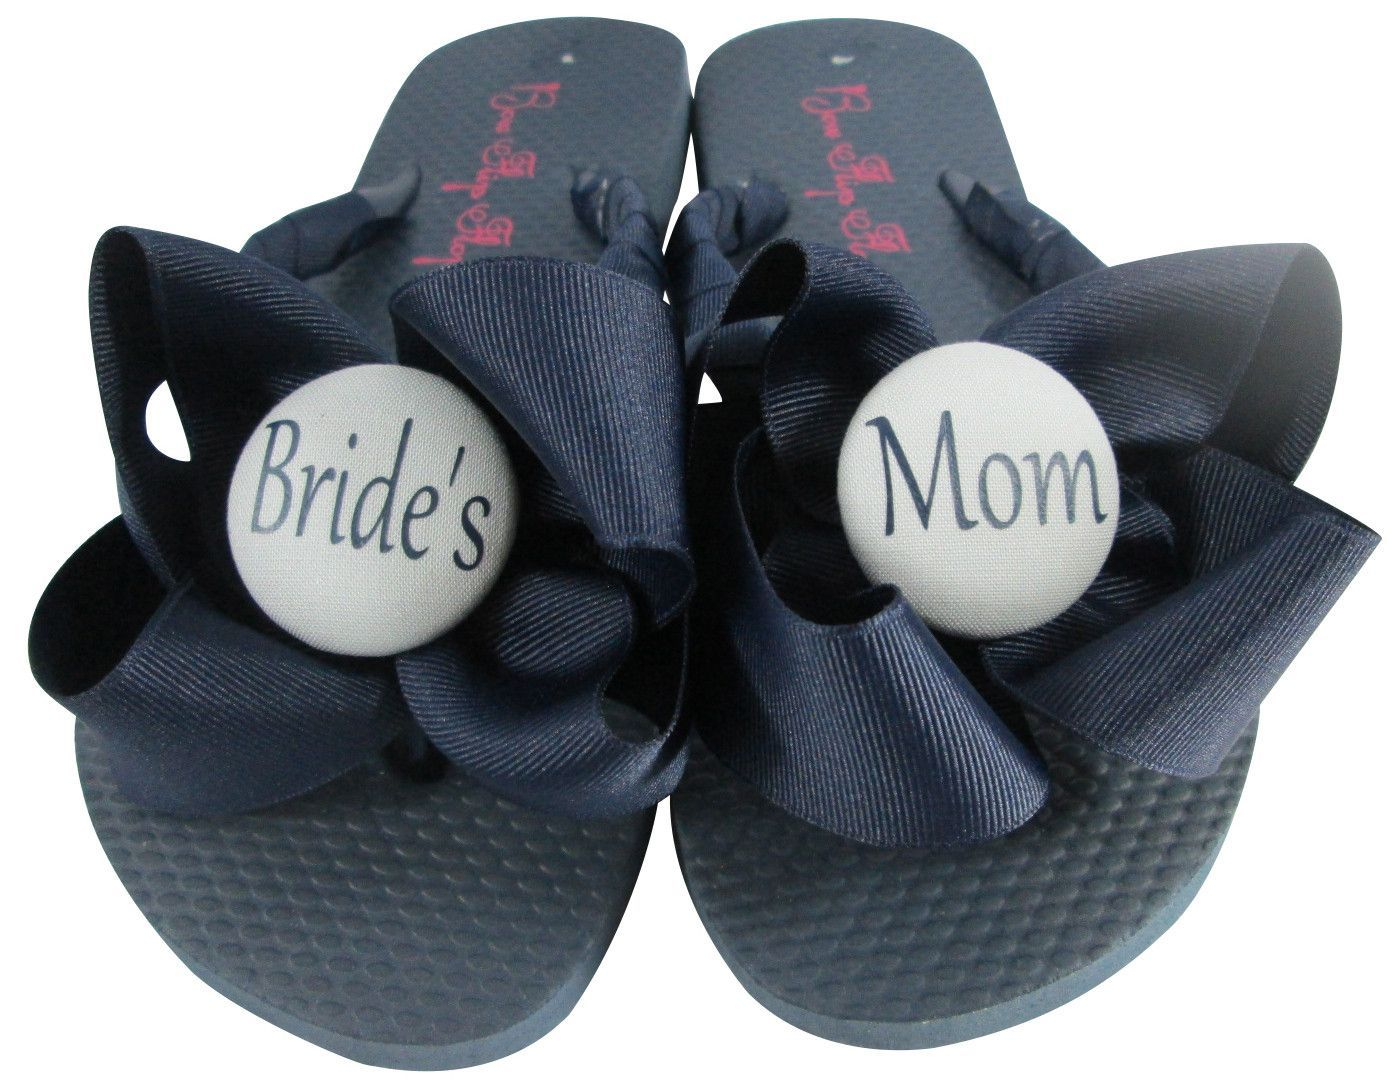 498968d27833 Mother of the Bride Flip Flops in Navy- choose from many colors ...